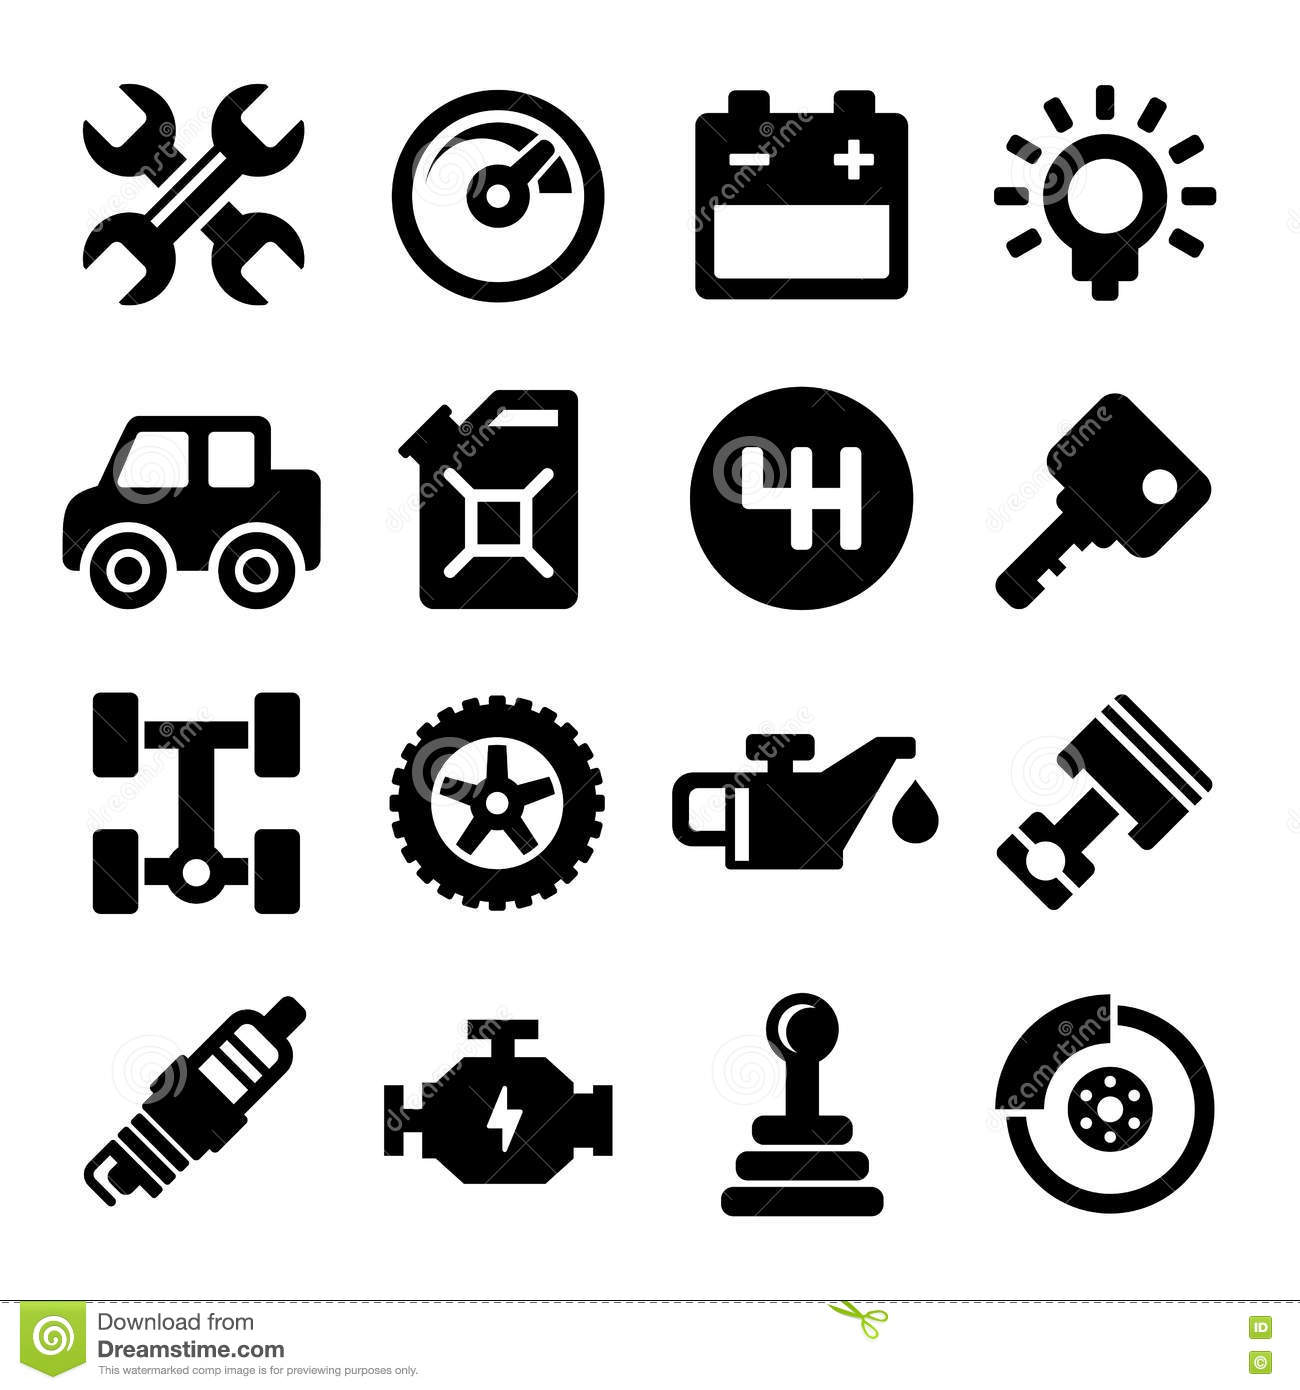 Auto Repair Service Icons stock vector. Illustration of